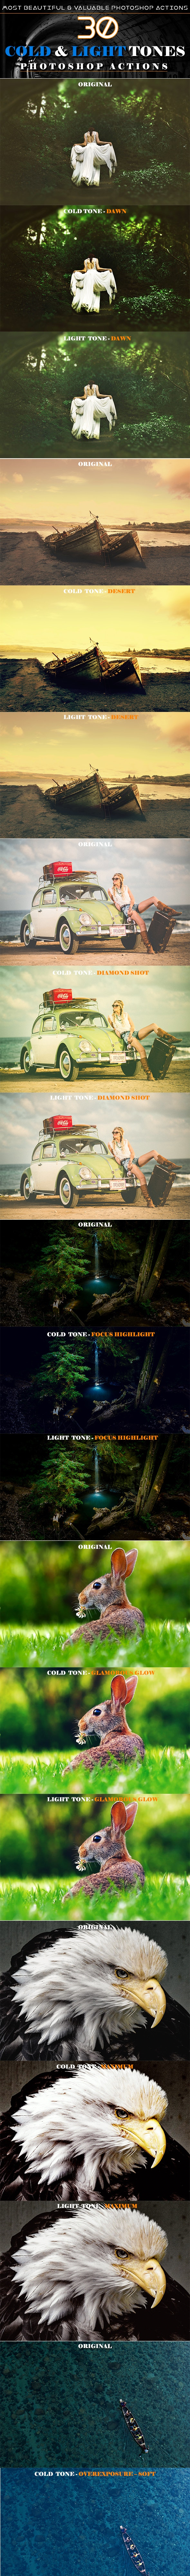 Cold and Light Tones - Actions Photoshop